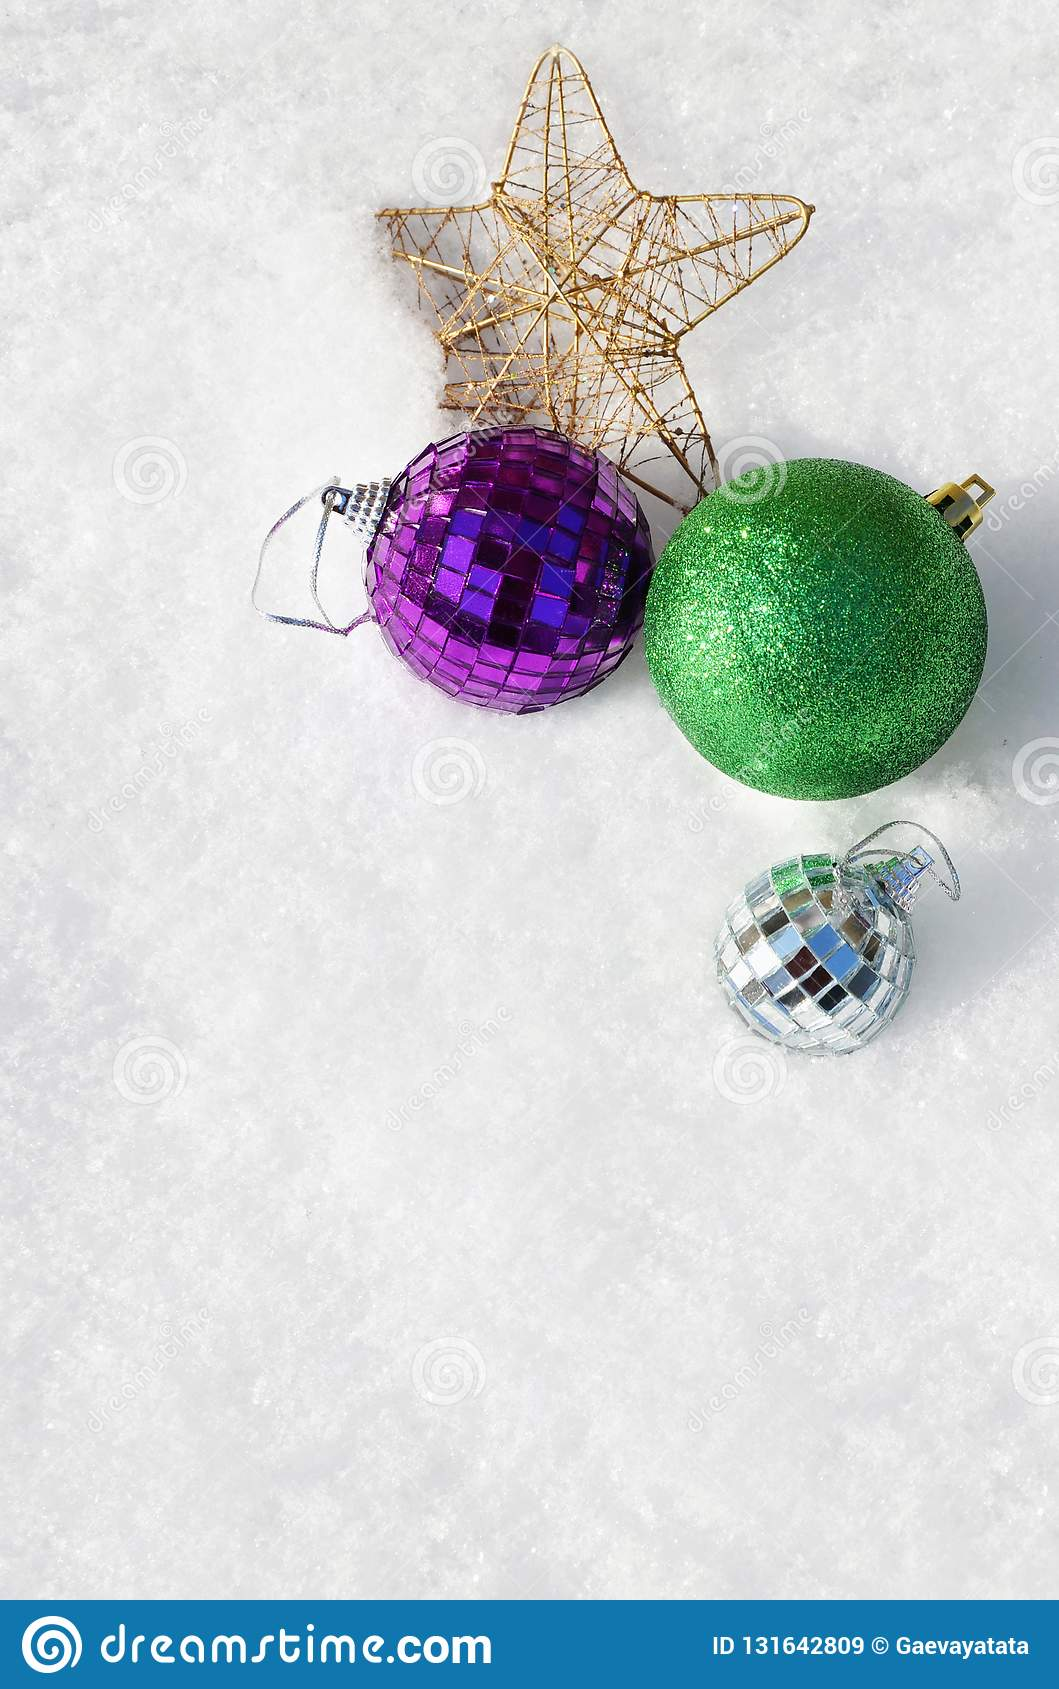 Christmas balls and a star in the snow, top view.